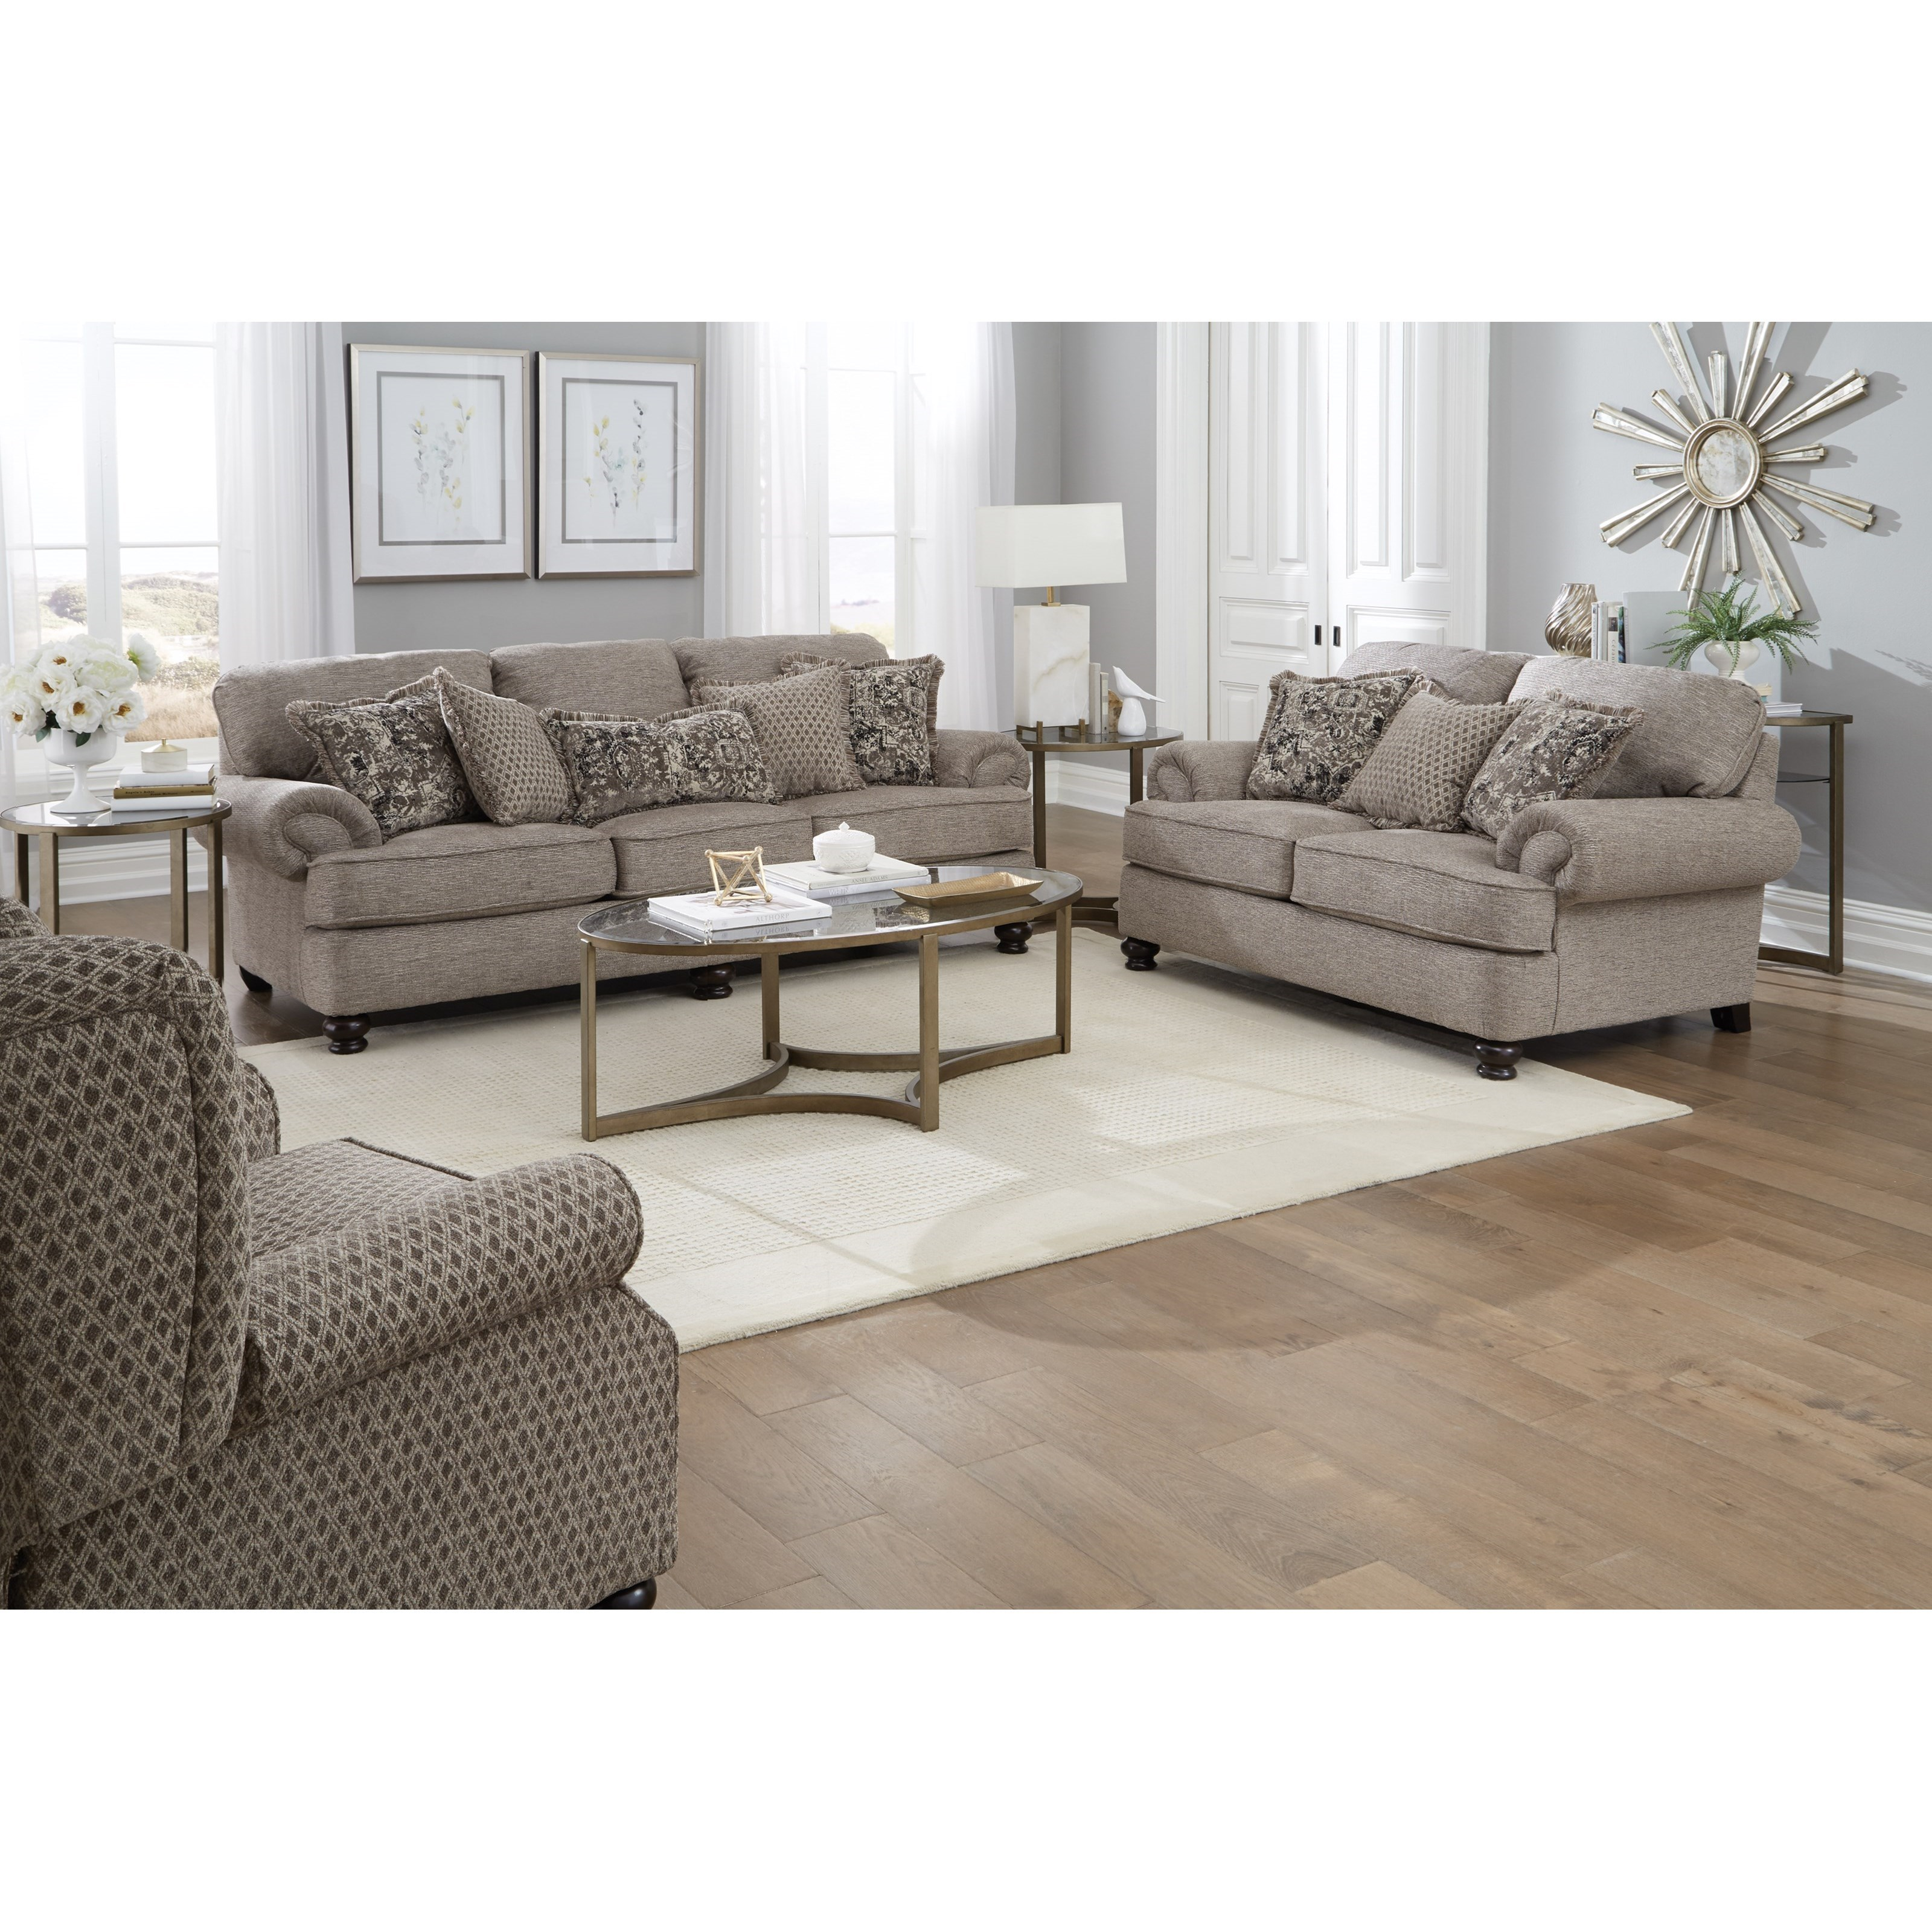 Frisco Living Room Group by Jackson Furniture at Crowley Furniture & Mattress